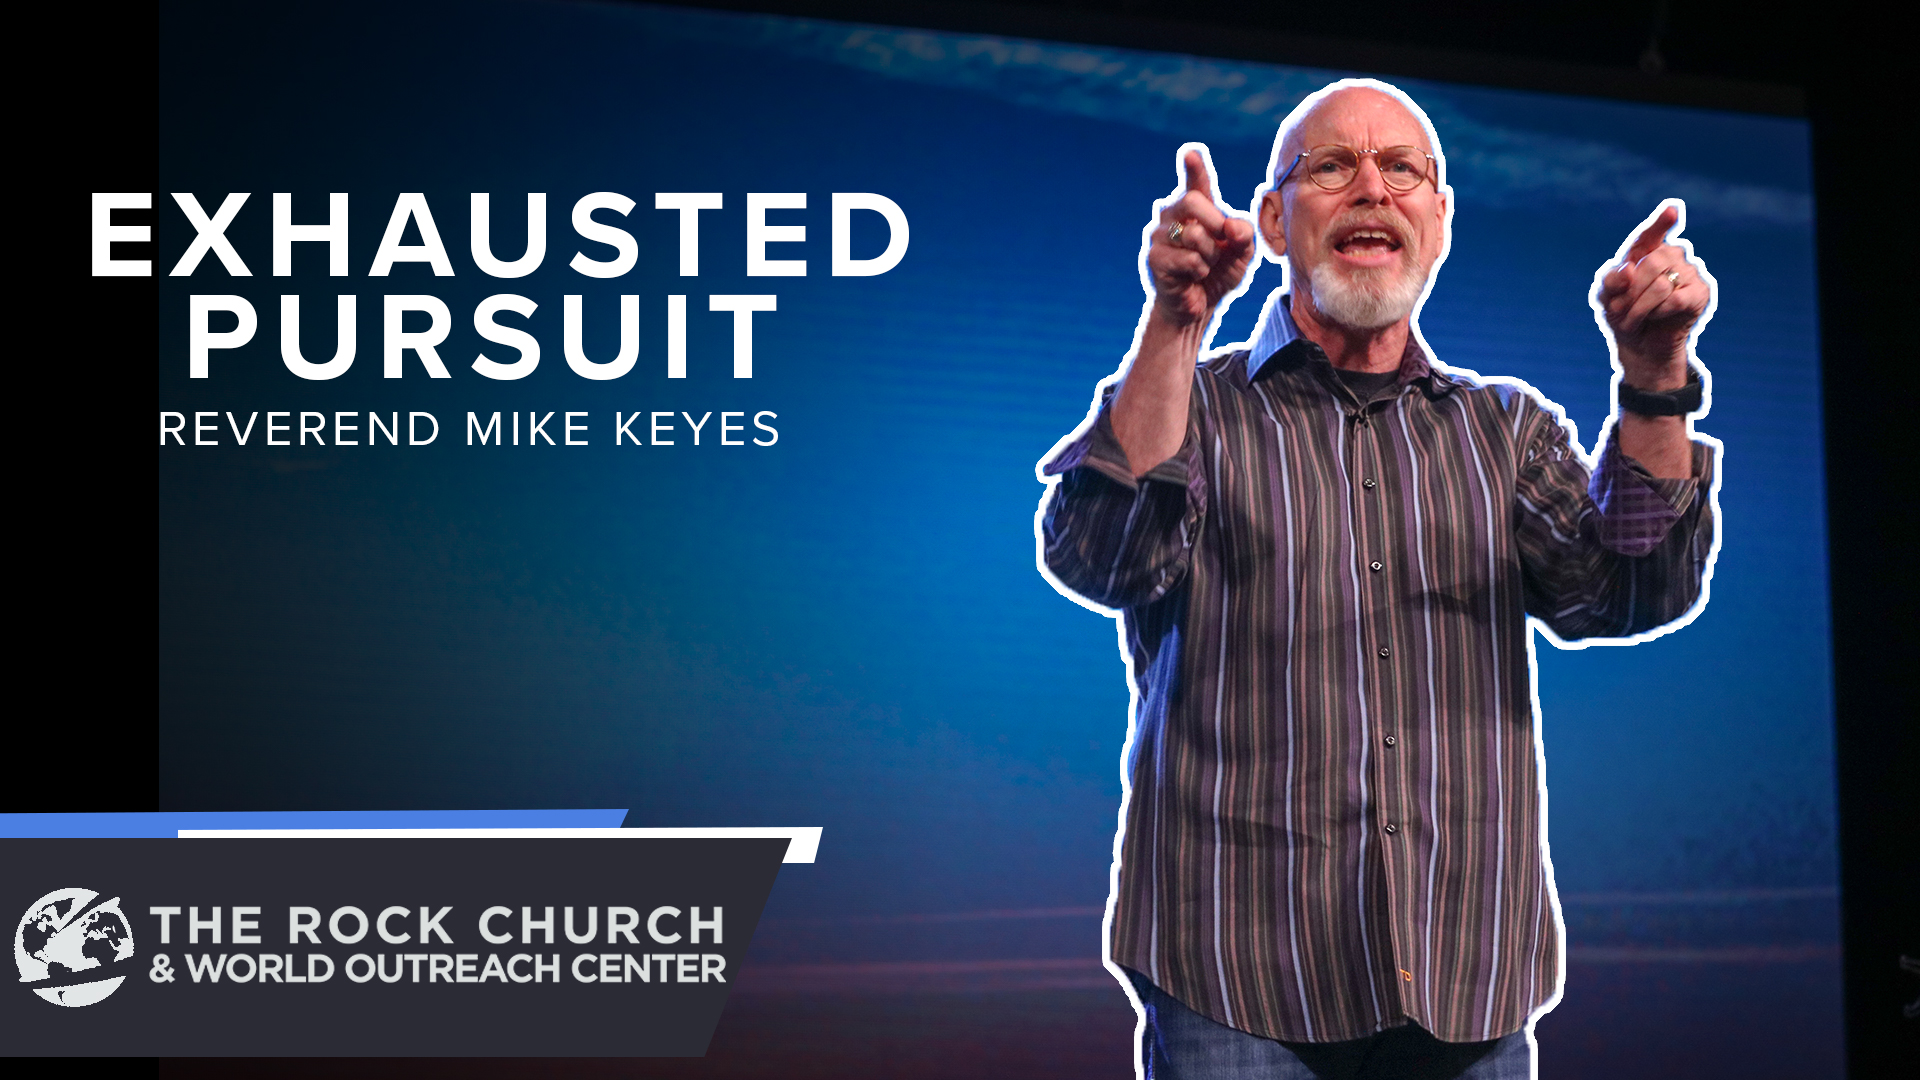 Watch Exhausted Pursuit